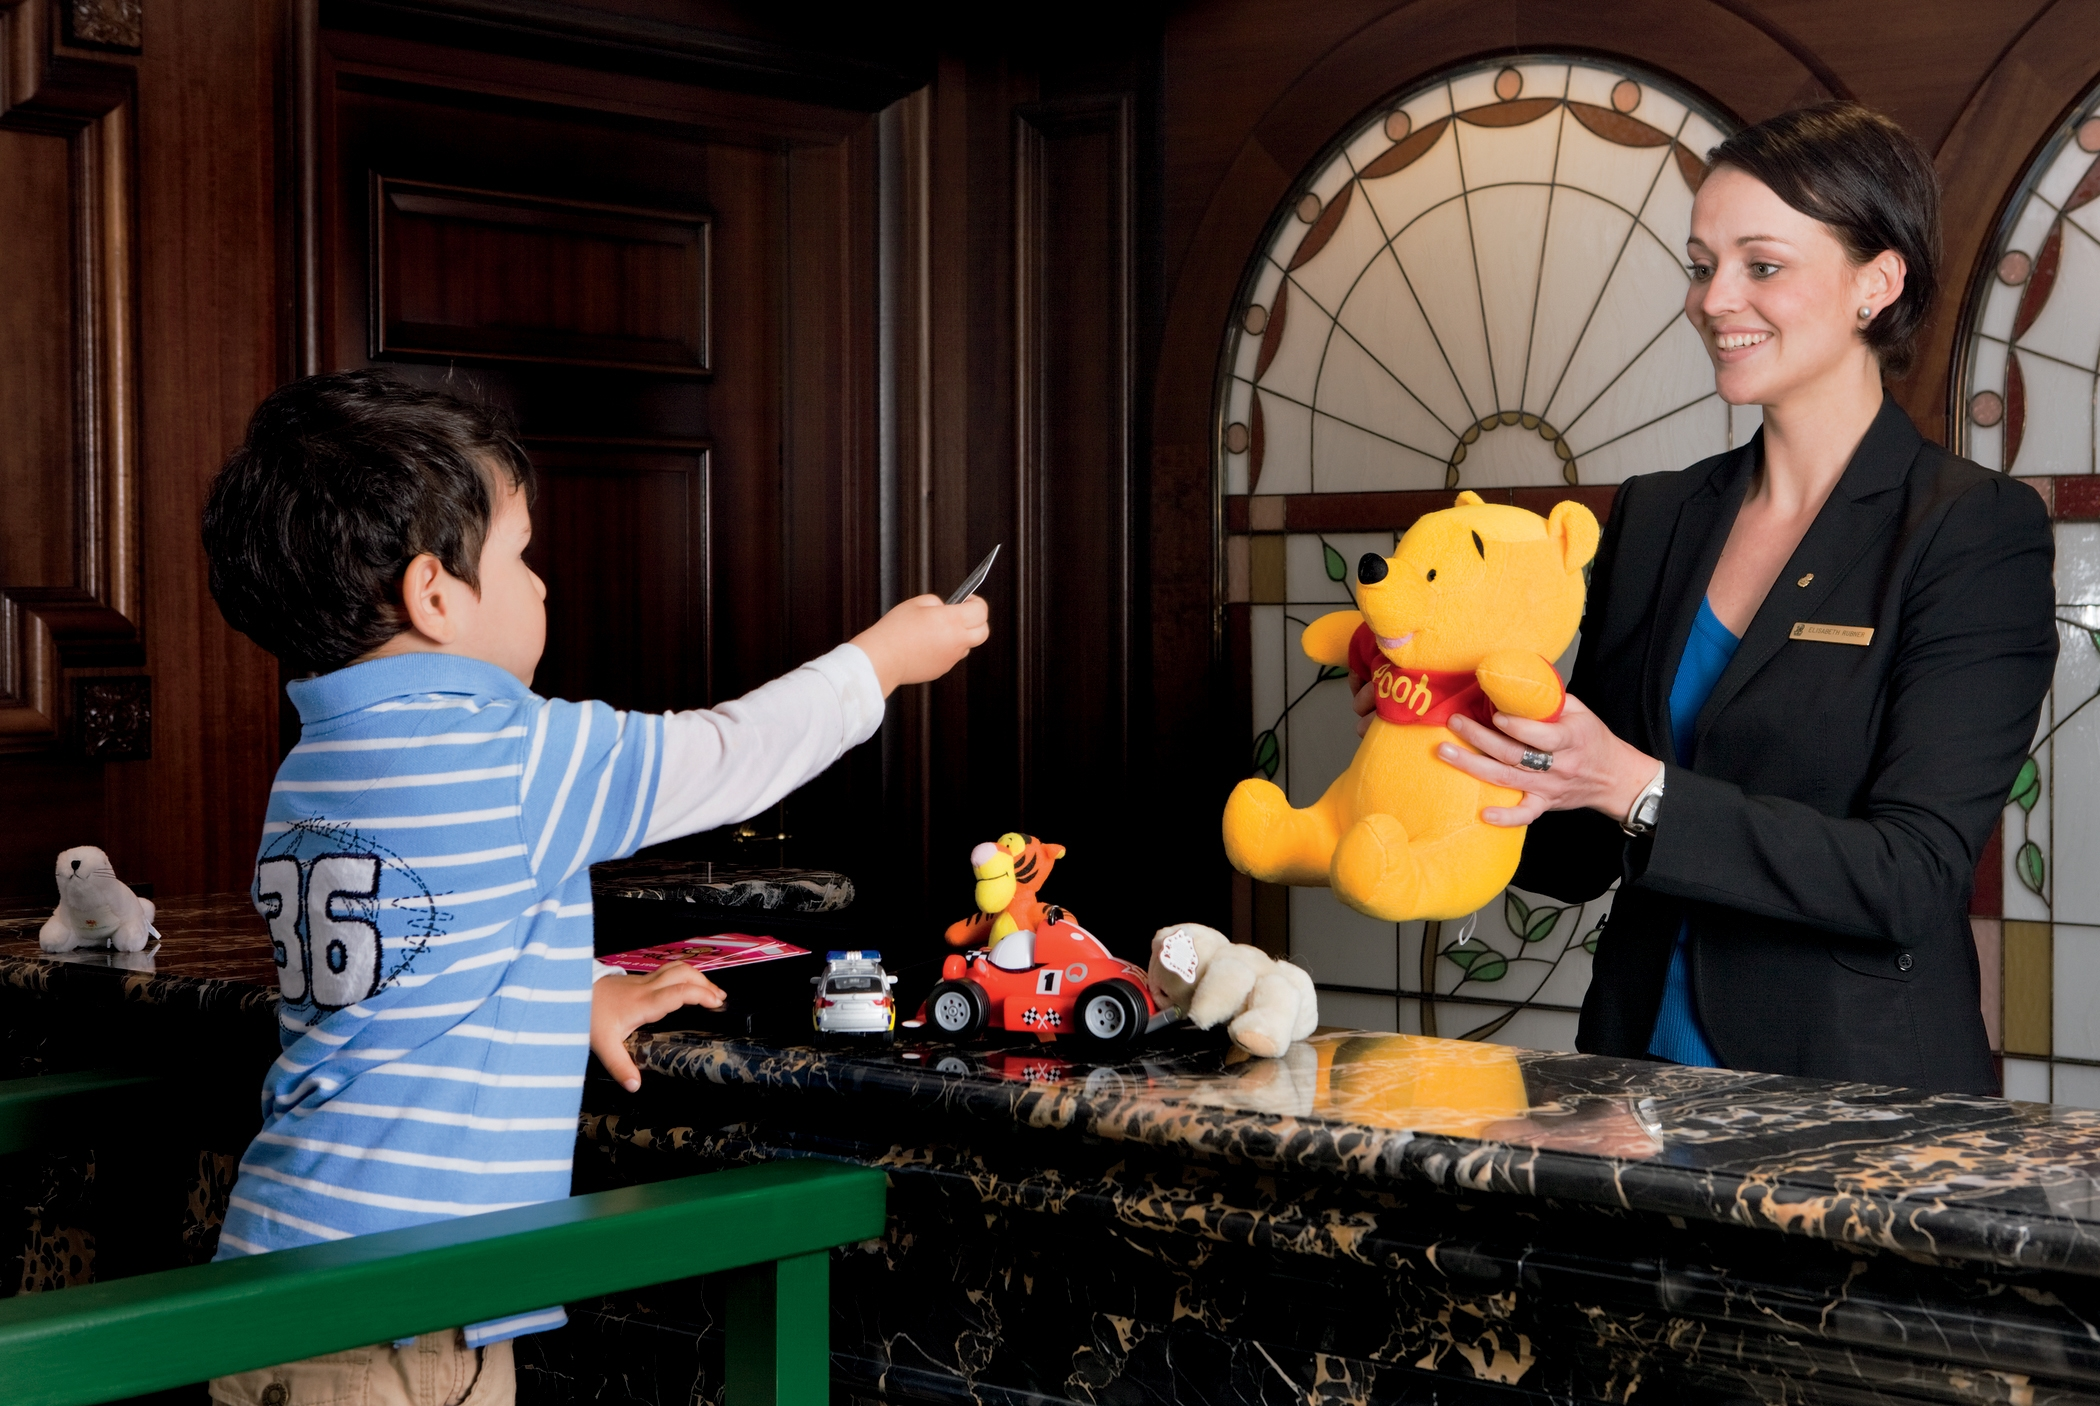 Berlin With Kids: Ritz Carlton Gives Kids Royal Treatment